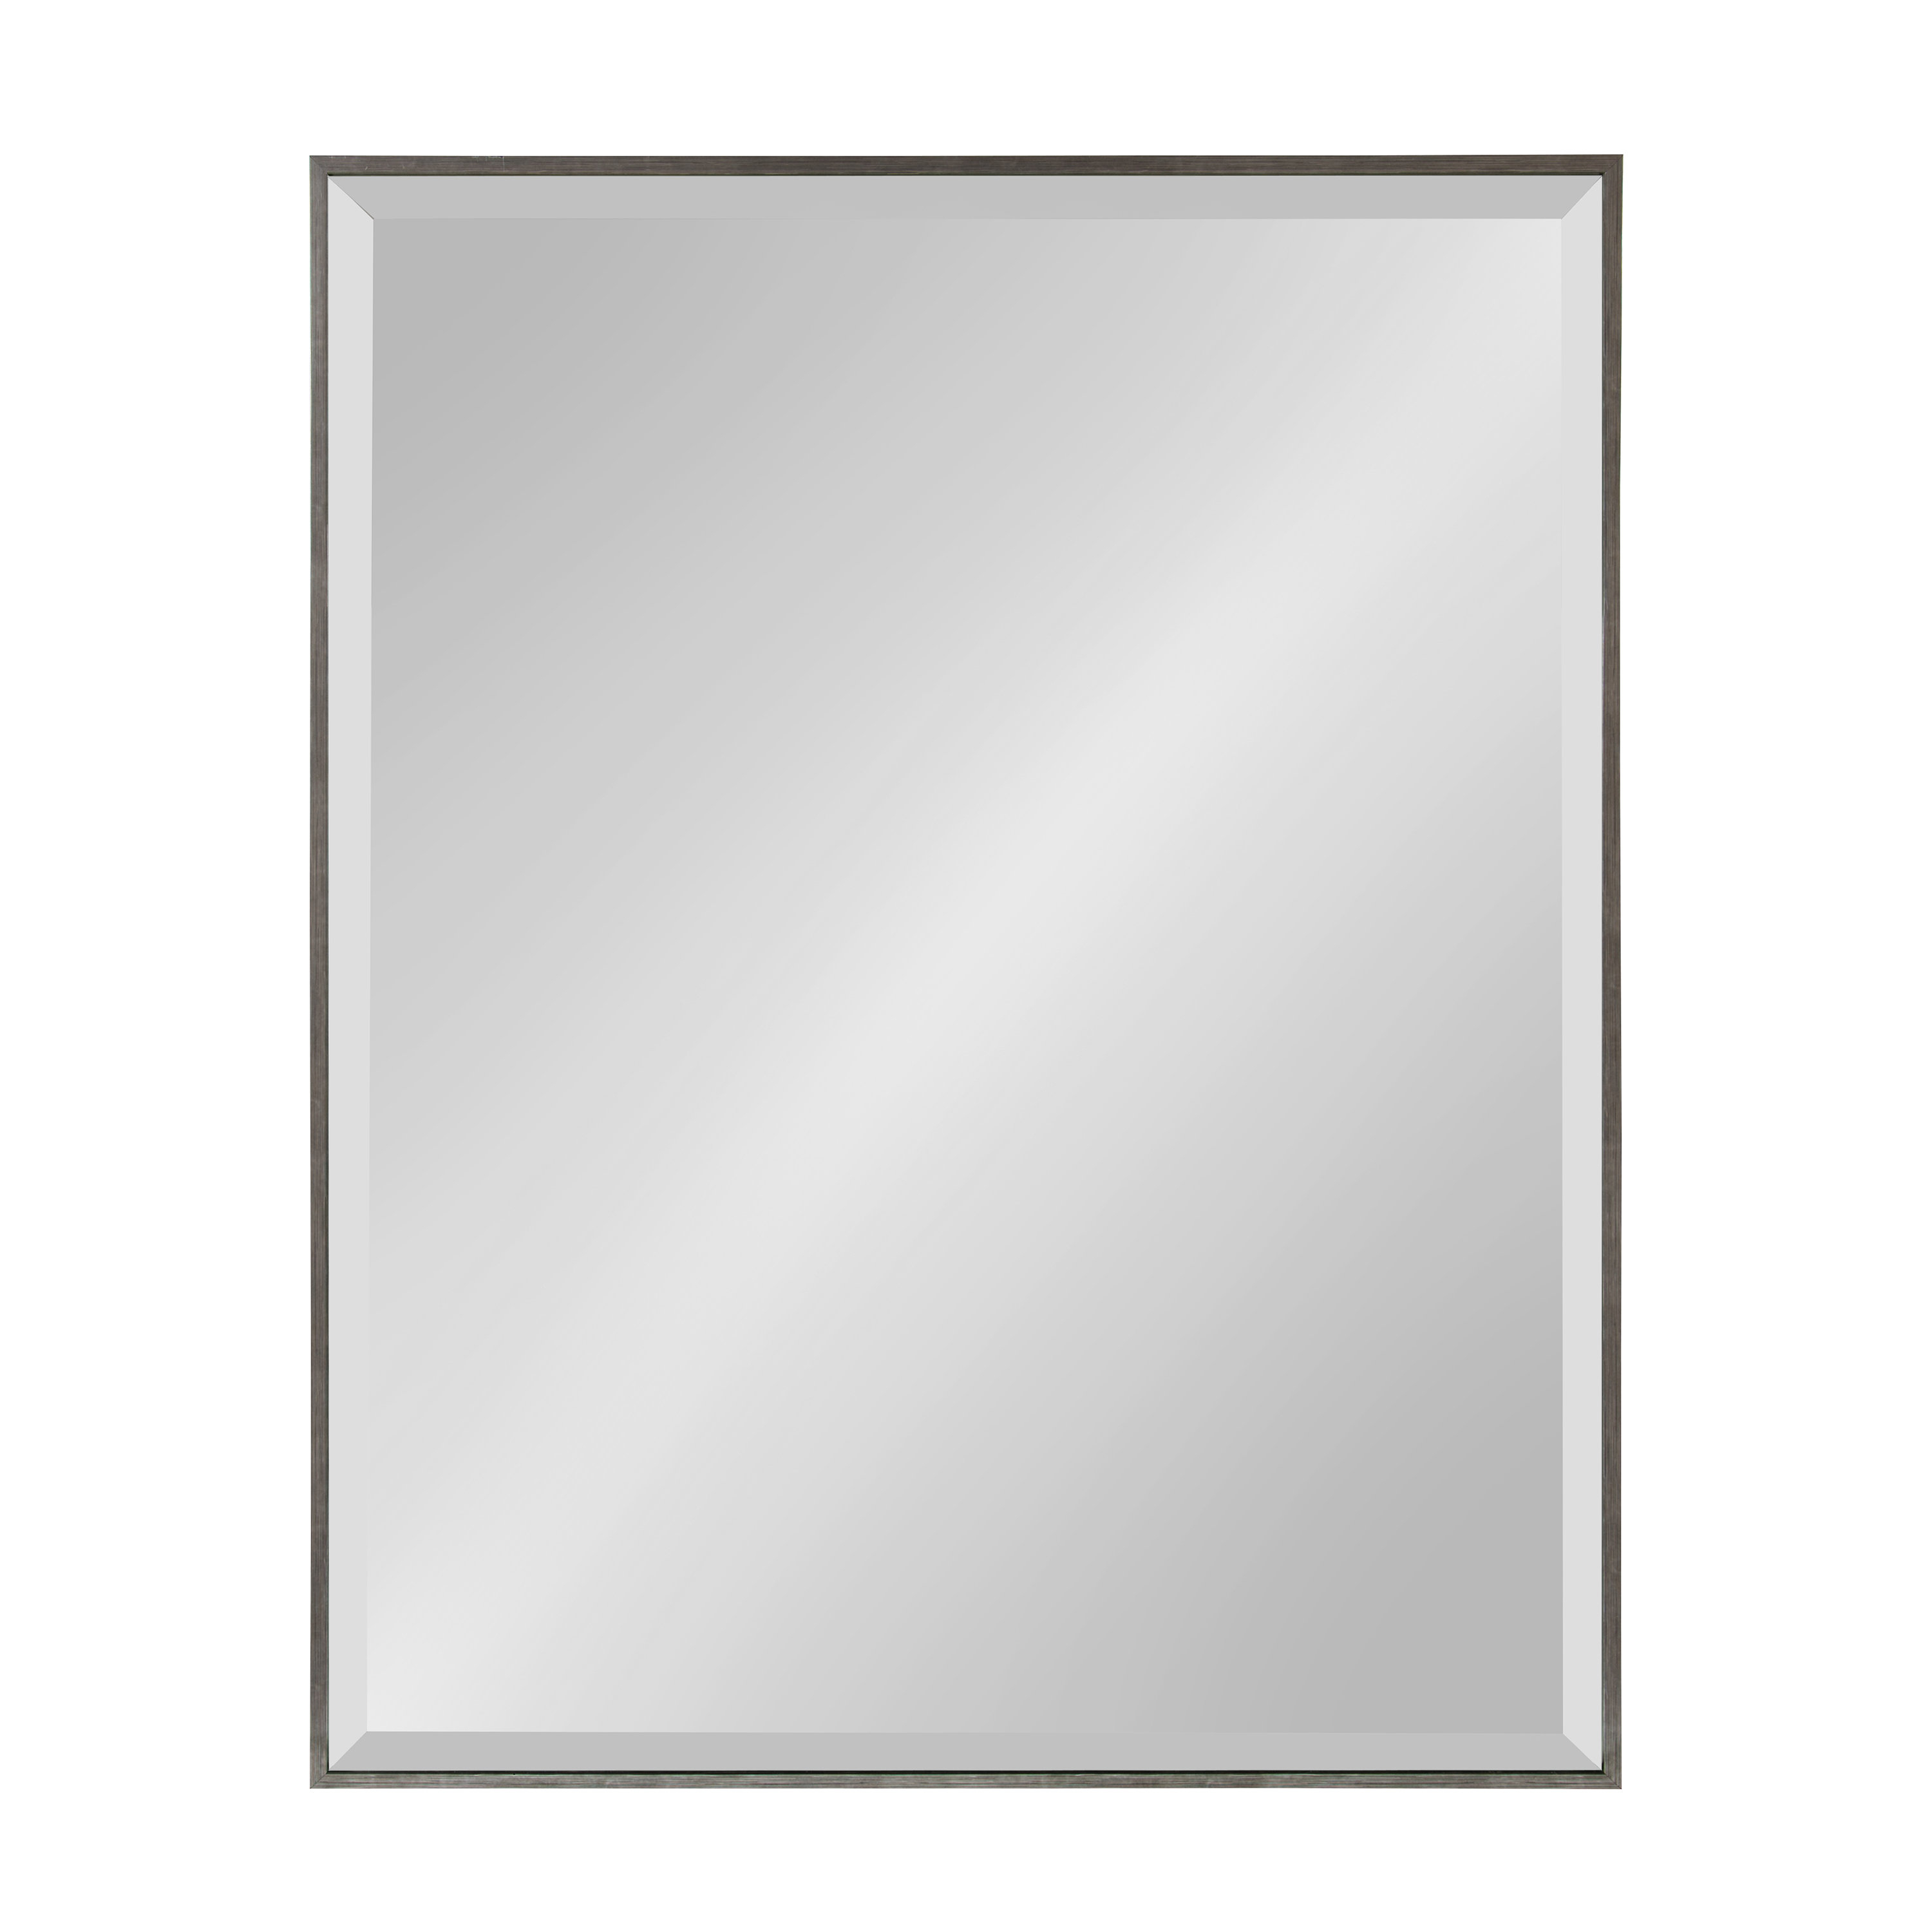 Logsdon Traditional Beveled Accent Mirror With Traditional Beveled Accent Mirrors (View 5 of 30)